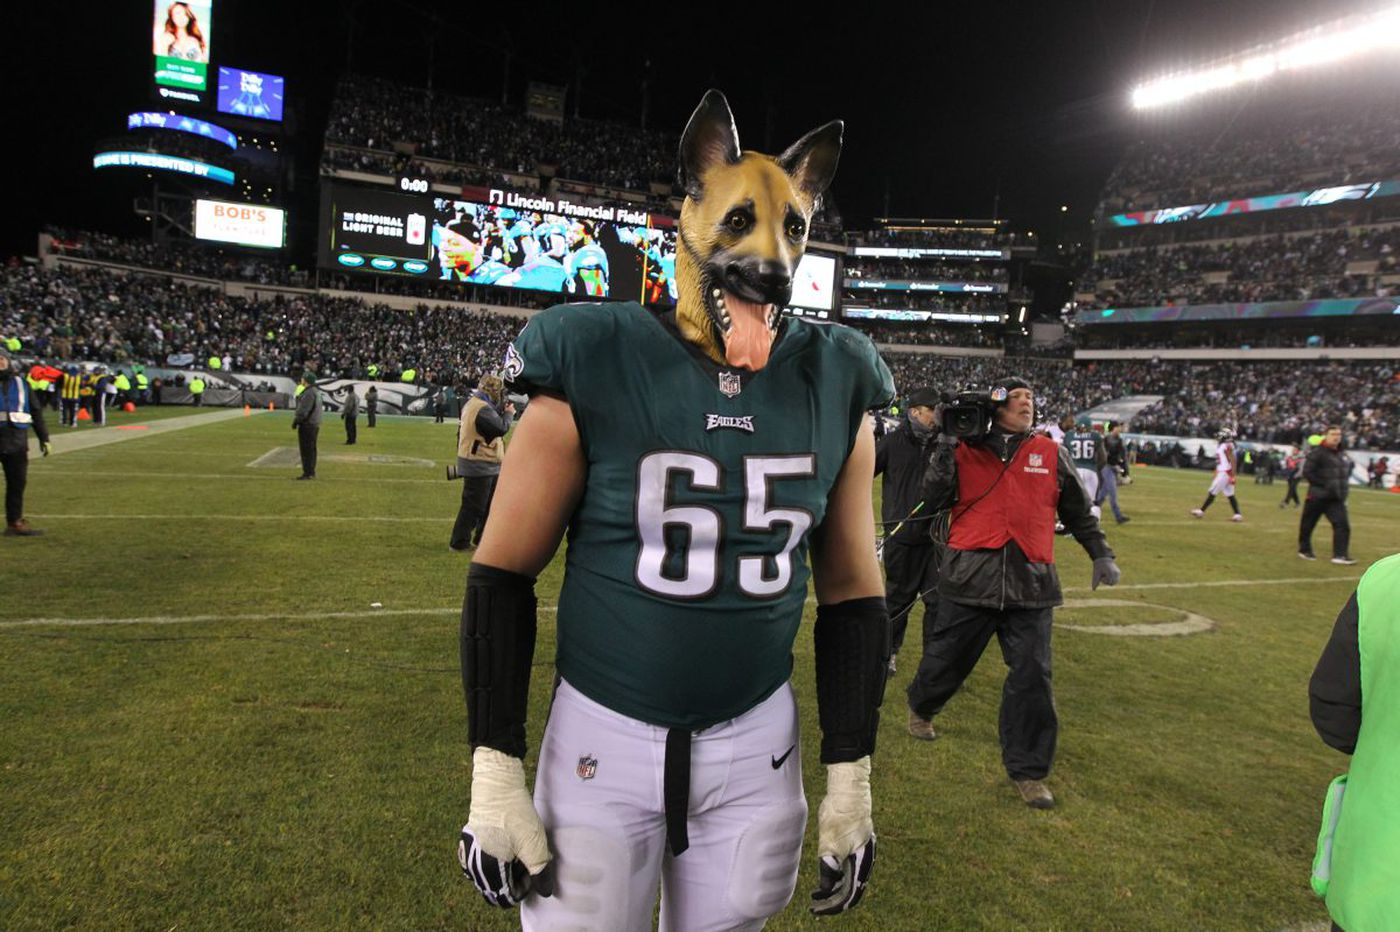 No matter who wins on Sunday, or whom Amazon chooses, cities like Philly still matter - and always will | Editorial